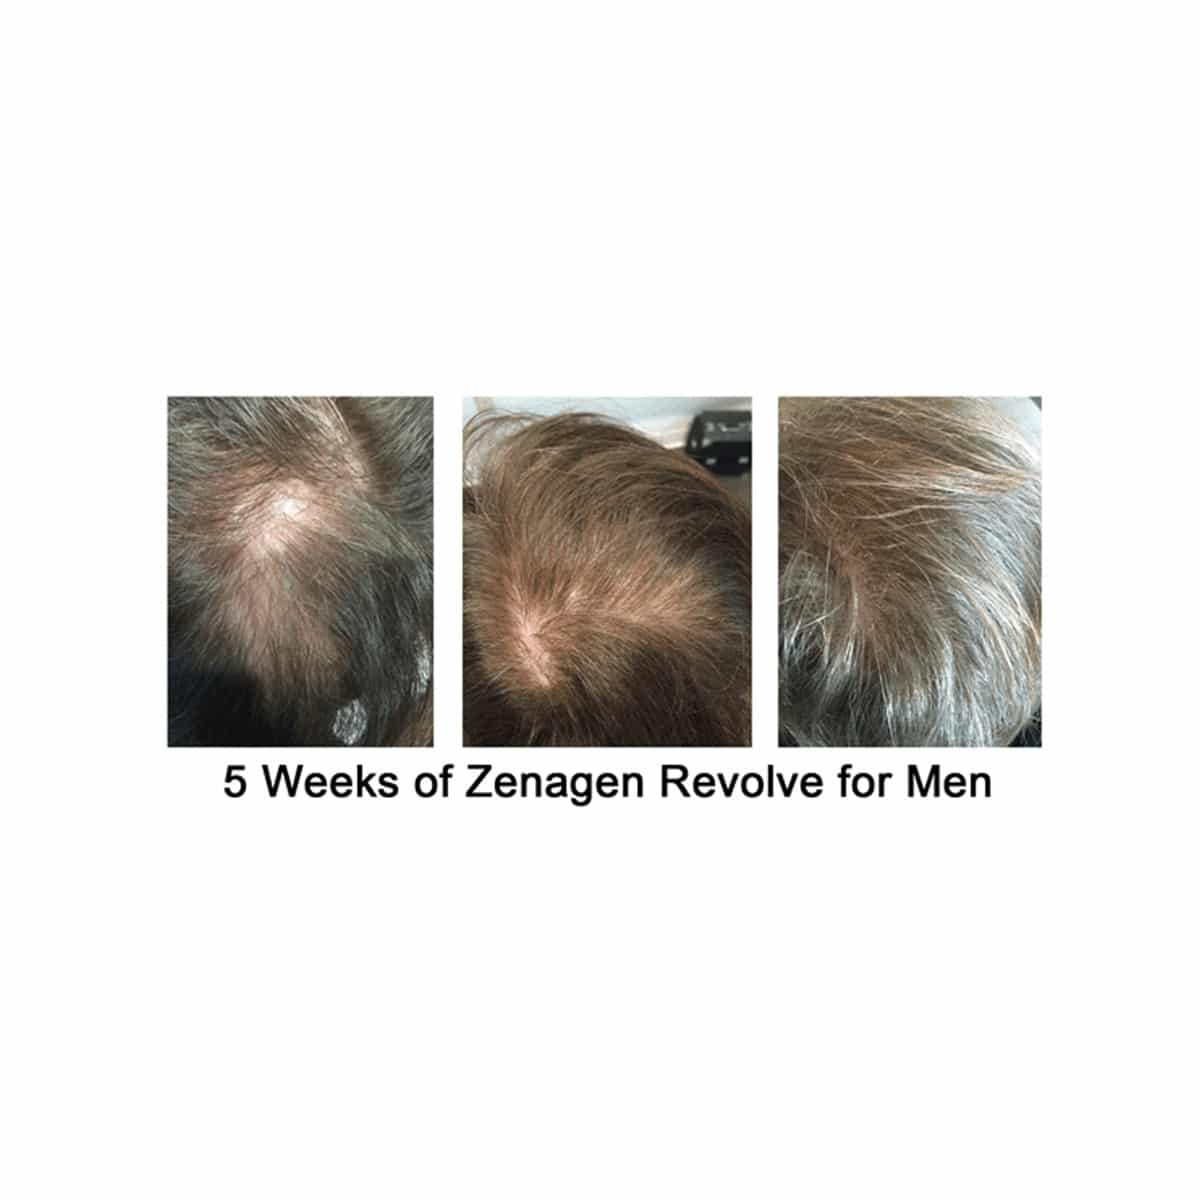 zenagen-men-before-after-4